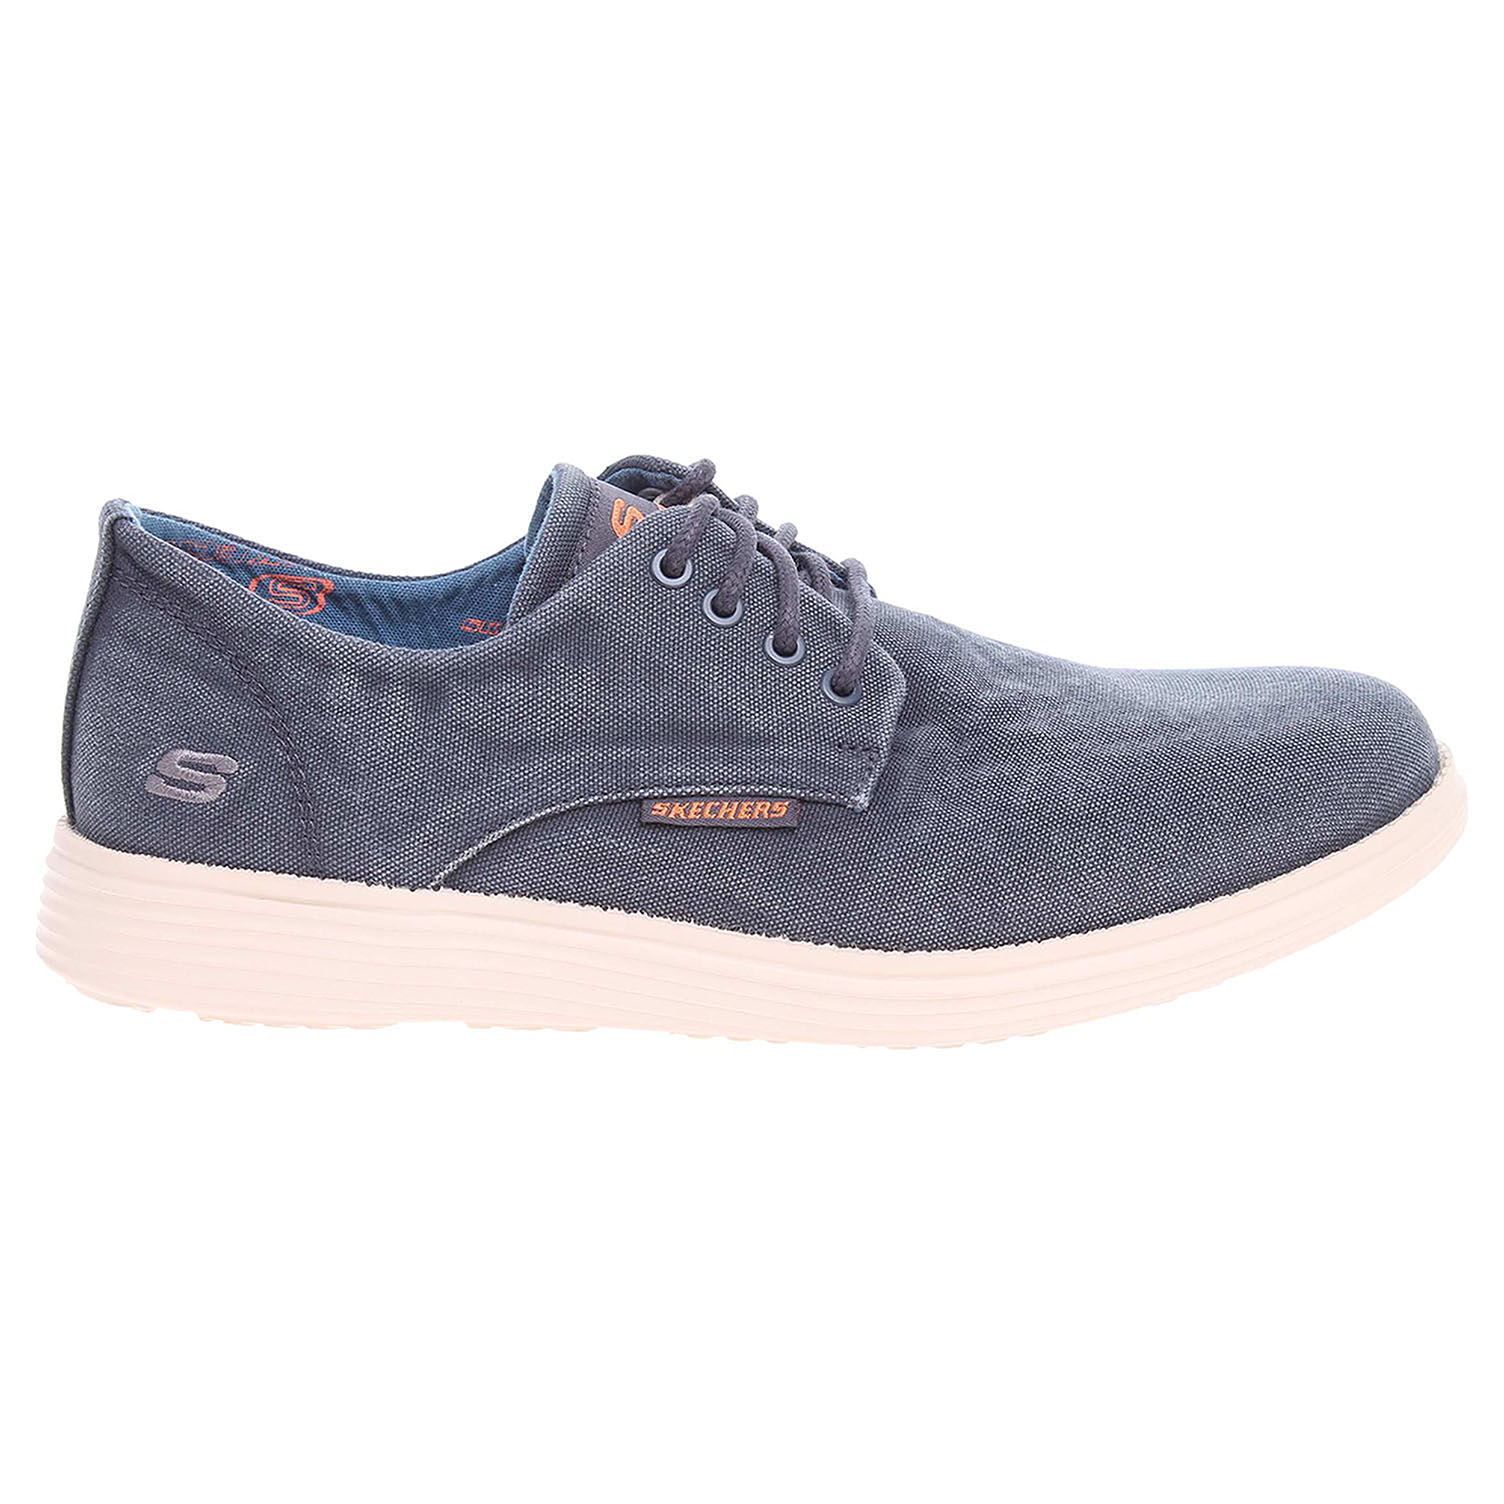 detail Skechers Status Borges navy